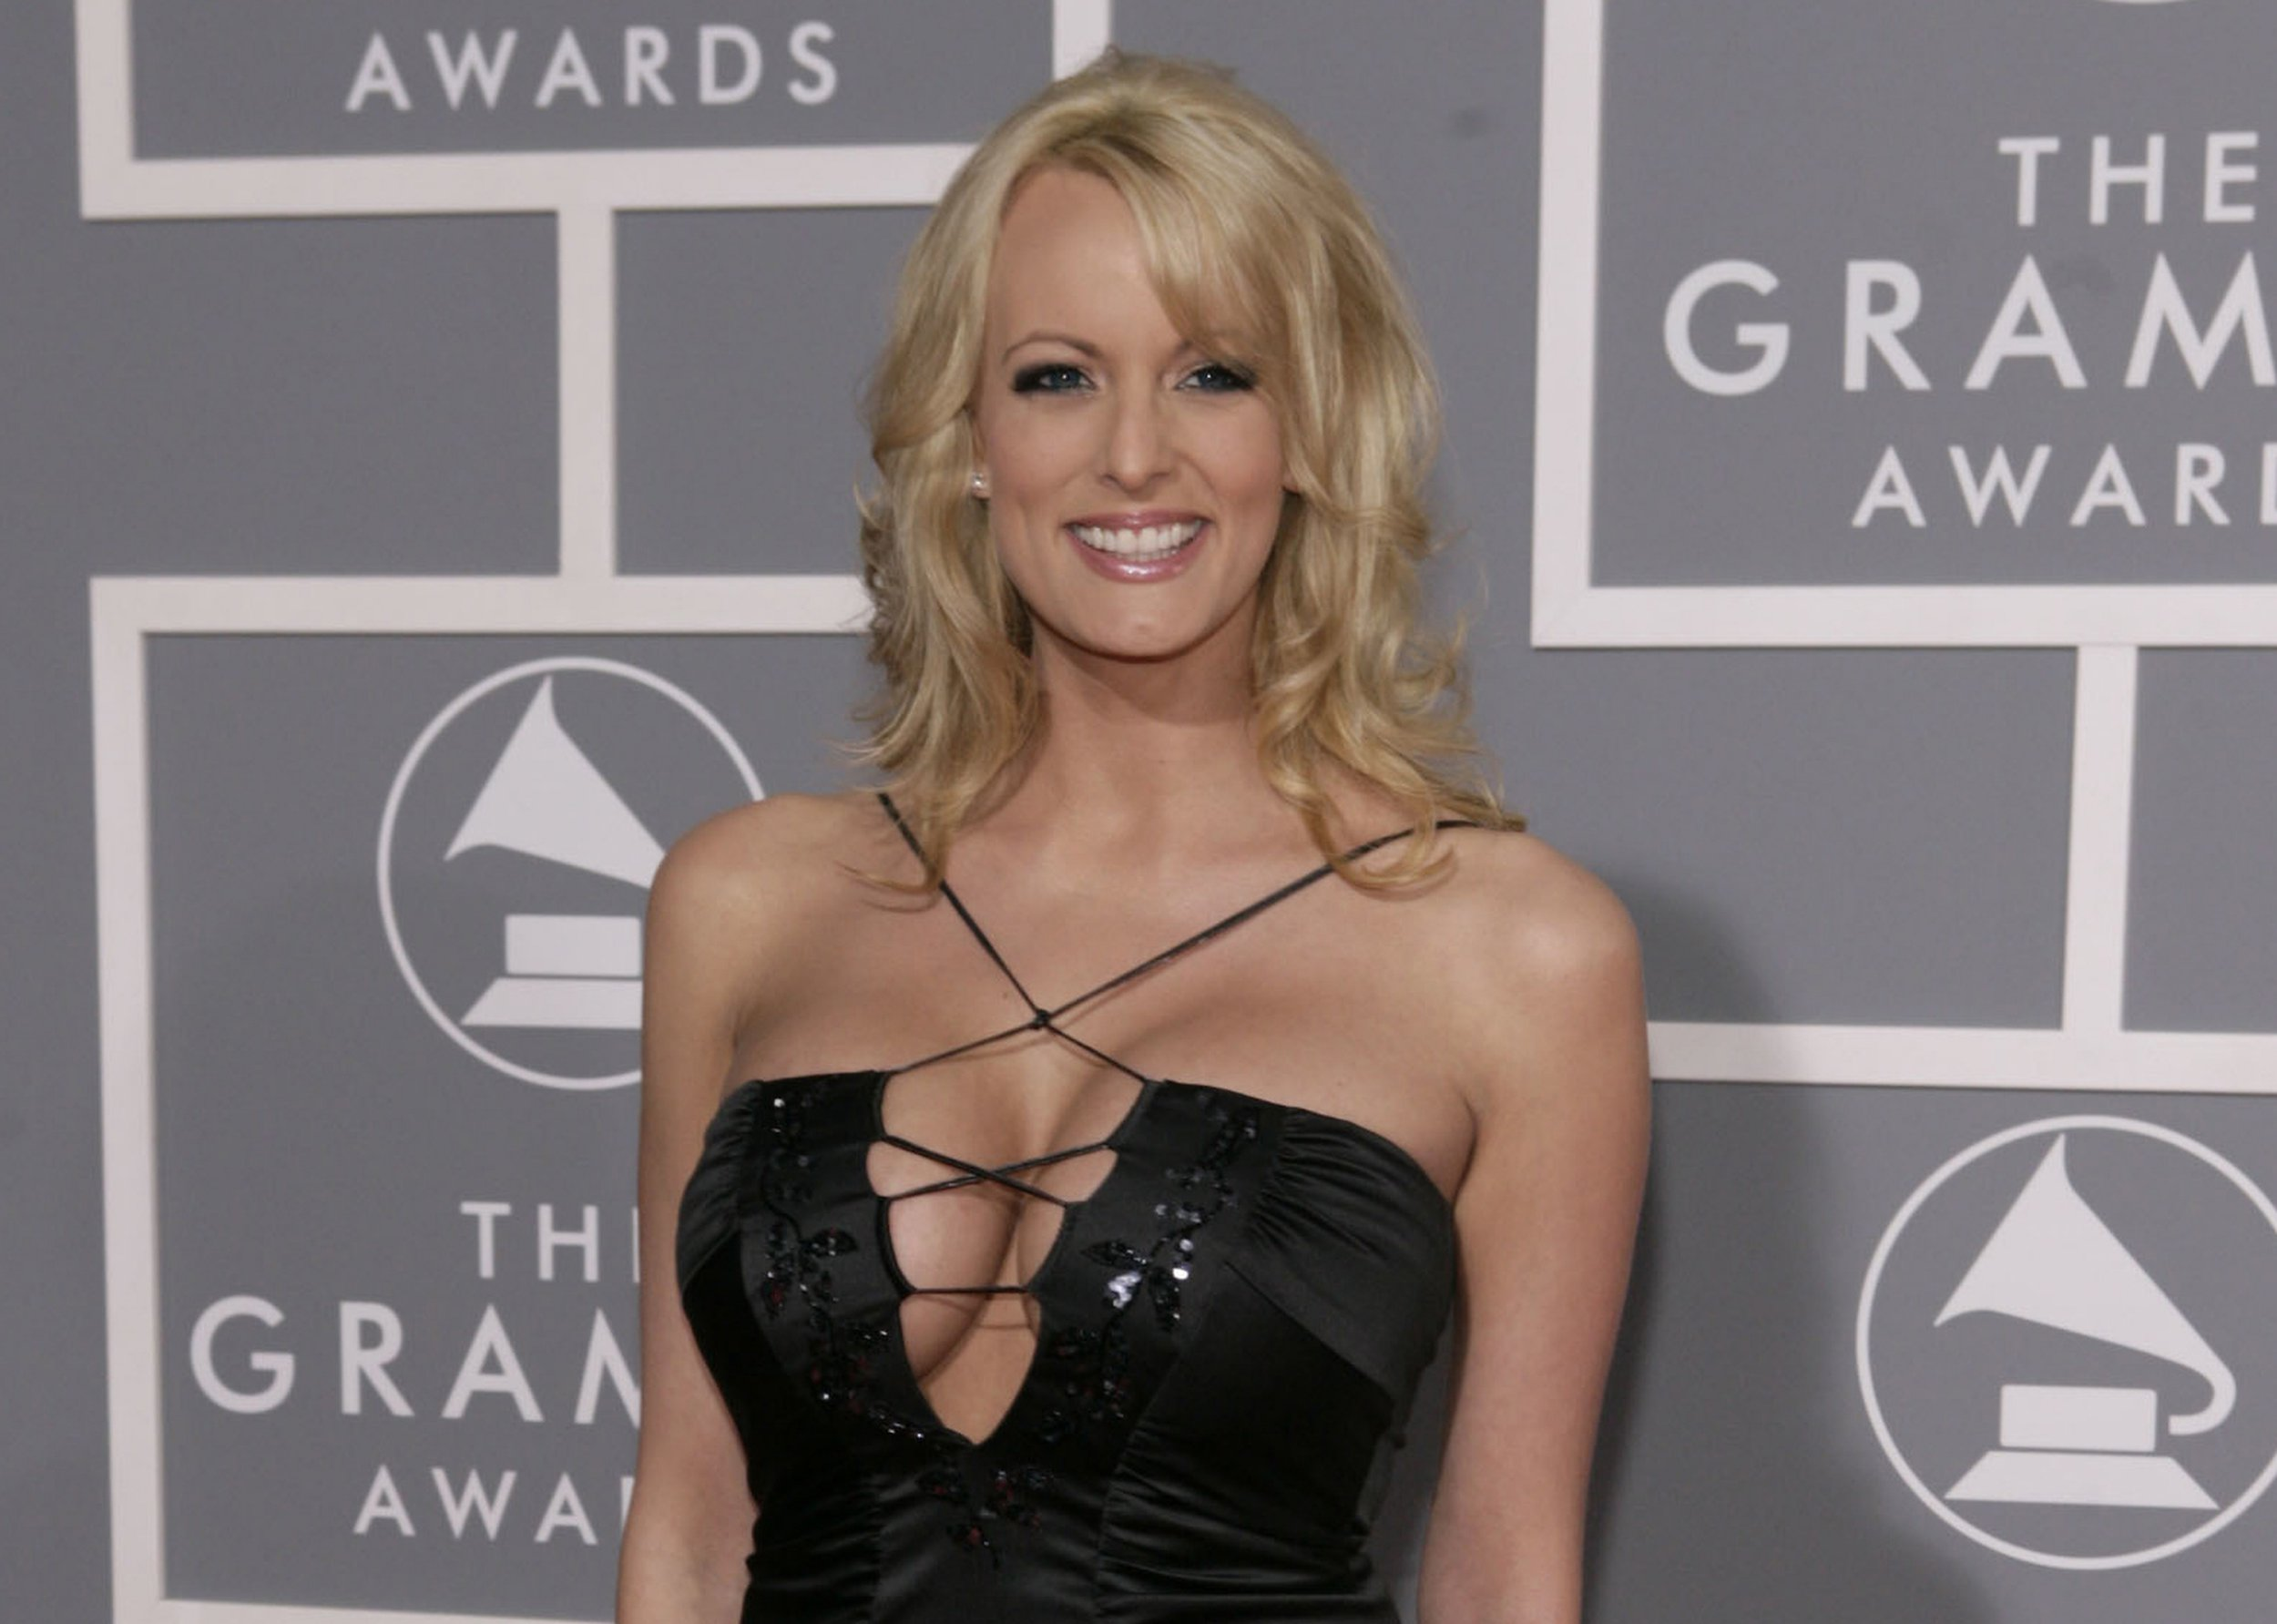 Stormy Daniels age, net worth, movies, real name and Donald Trump claims